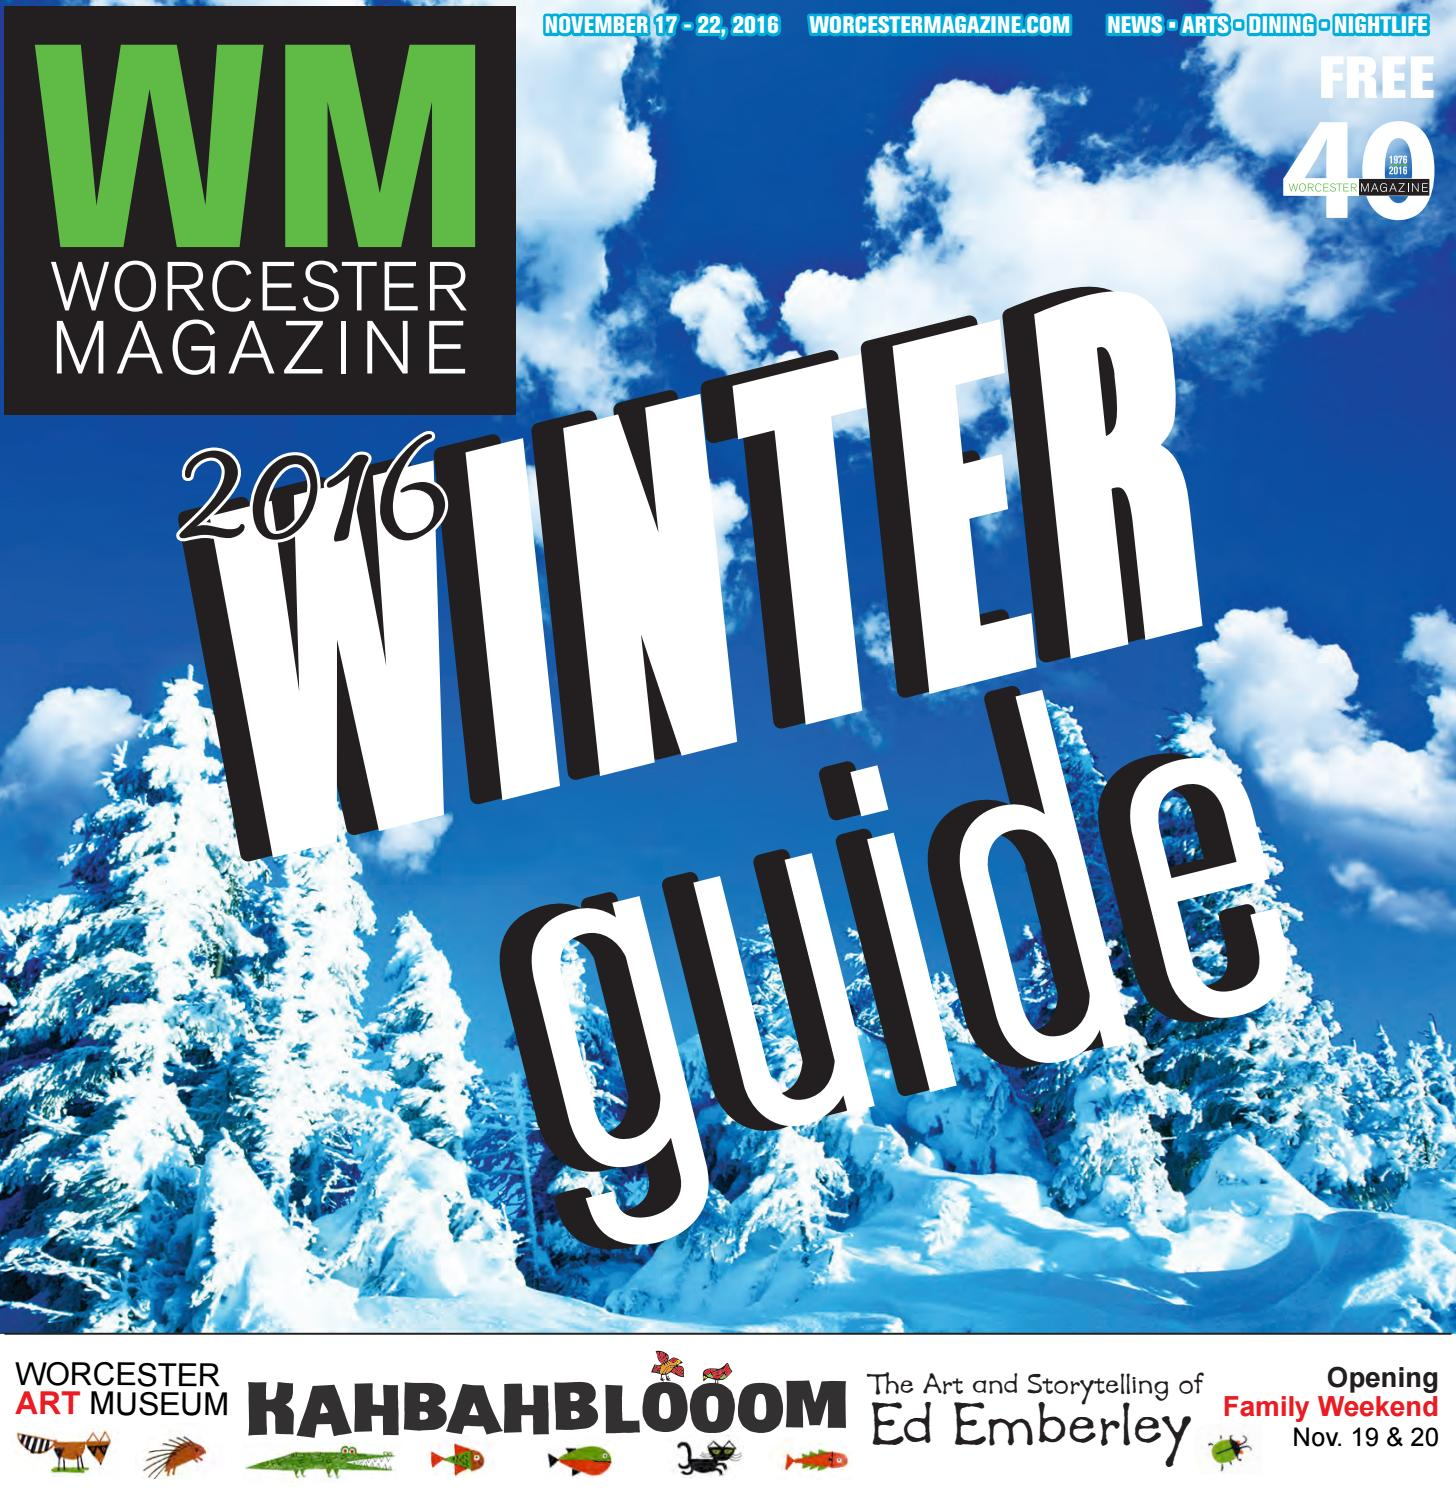 Worcester Magazine November 17 - 22, 2016 by Worcester Magazine - issuu